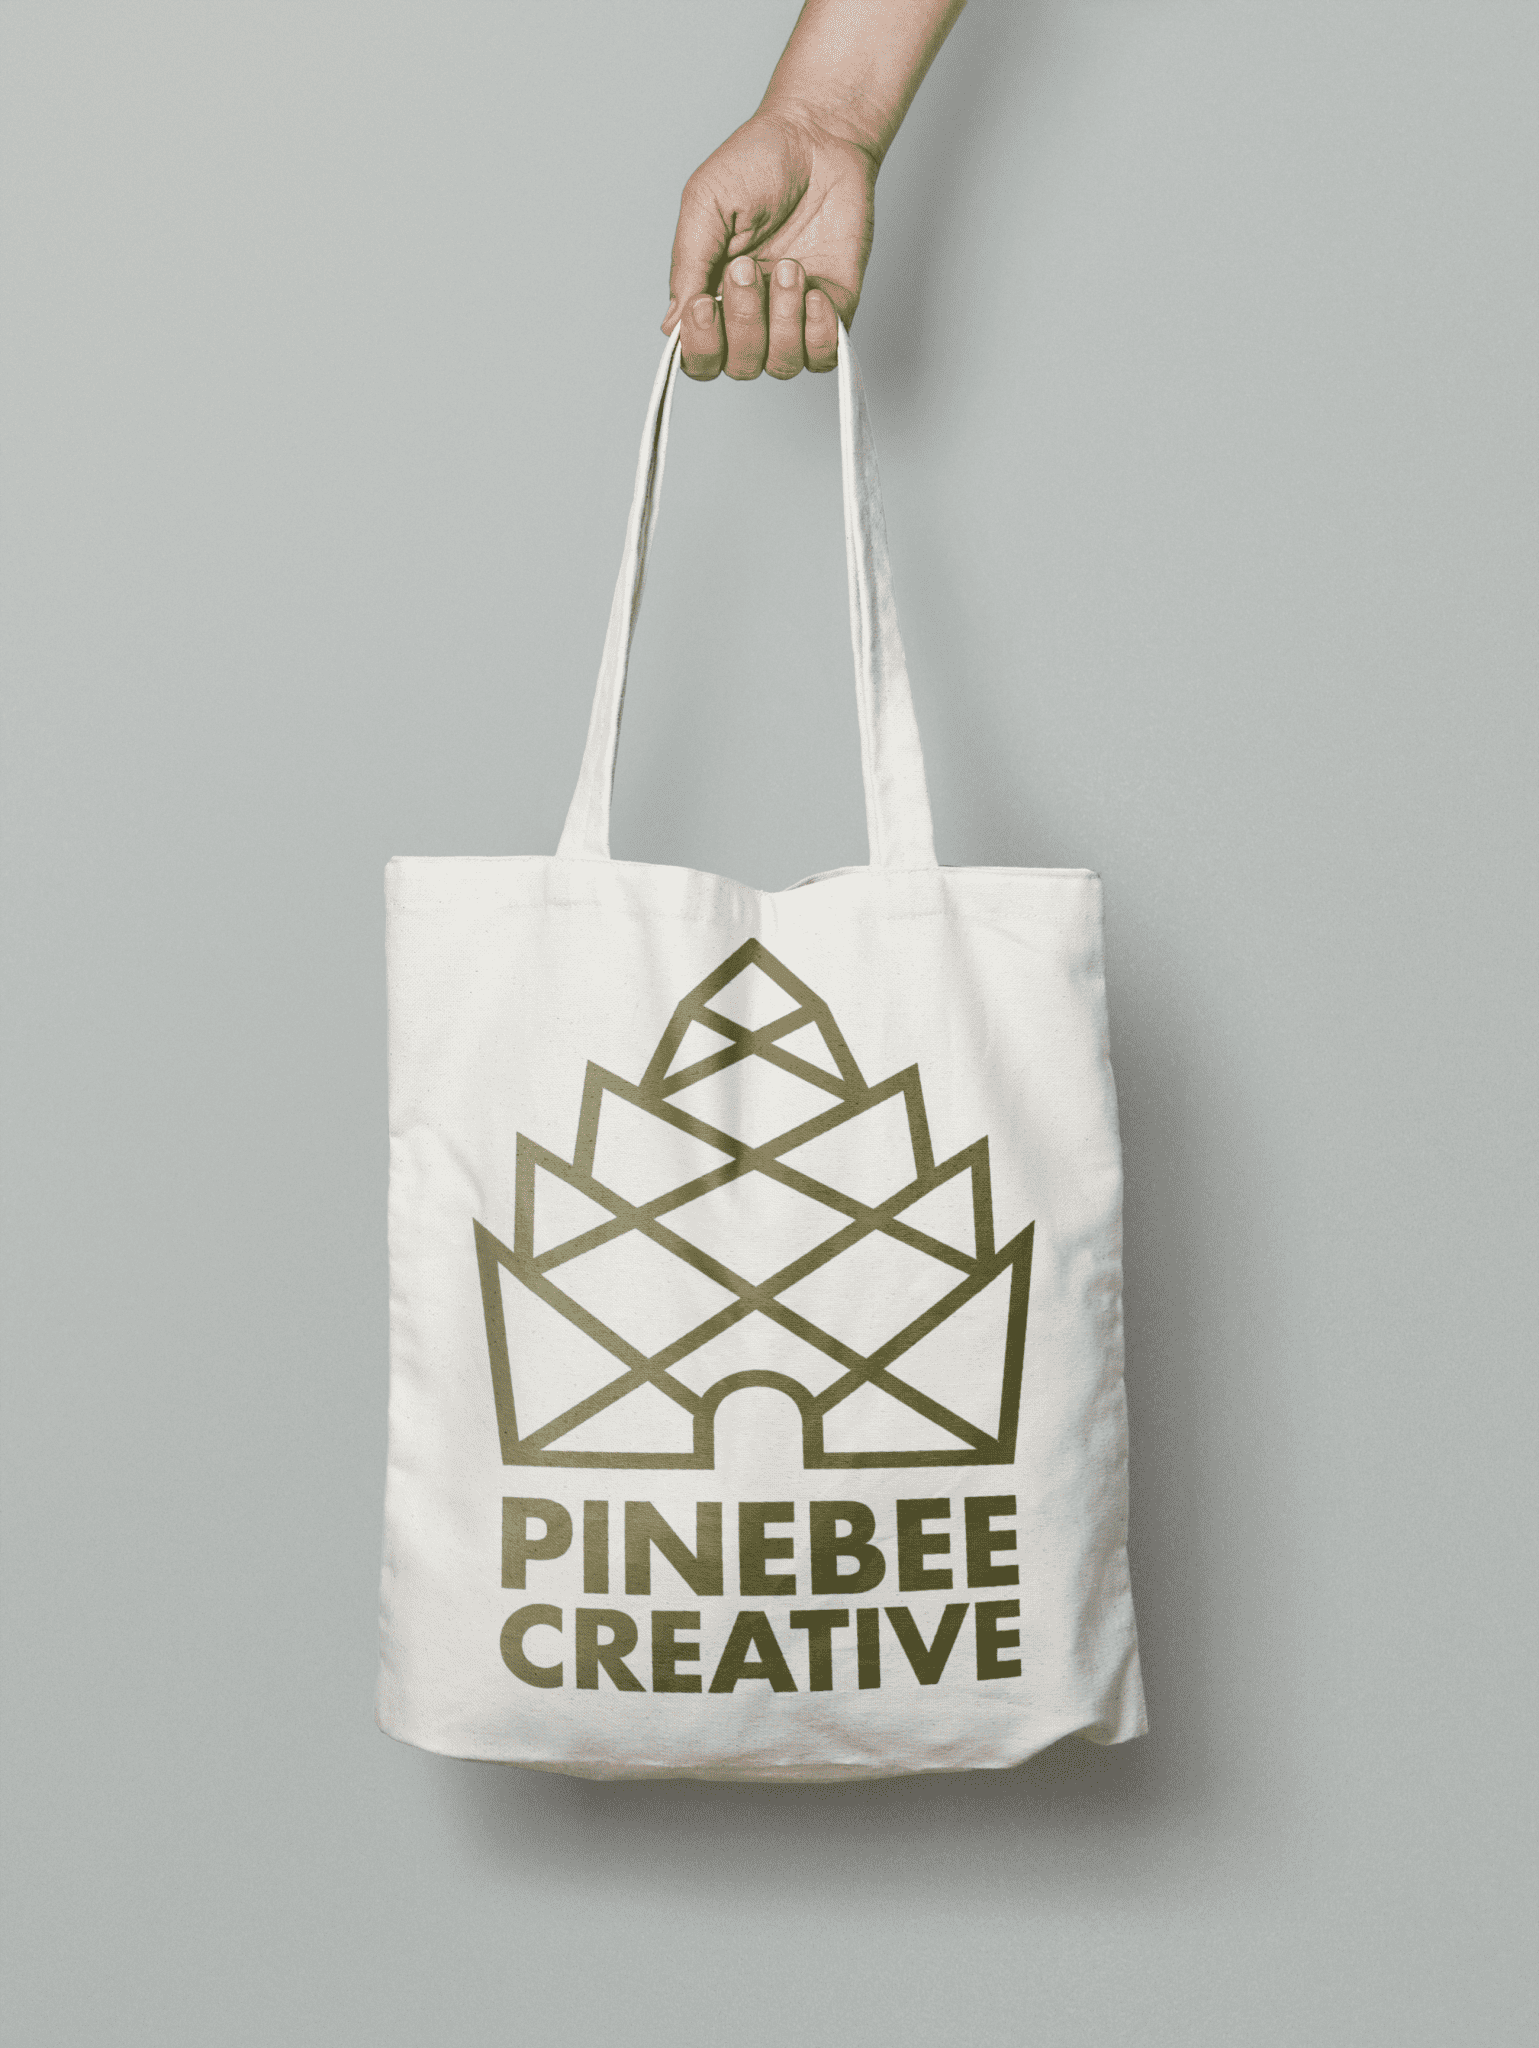 Promotional Canvas Tote Bag with Pinebee Creative Logo